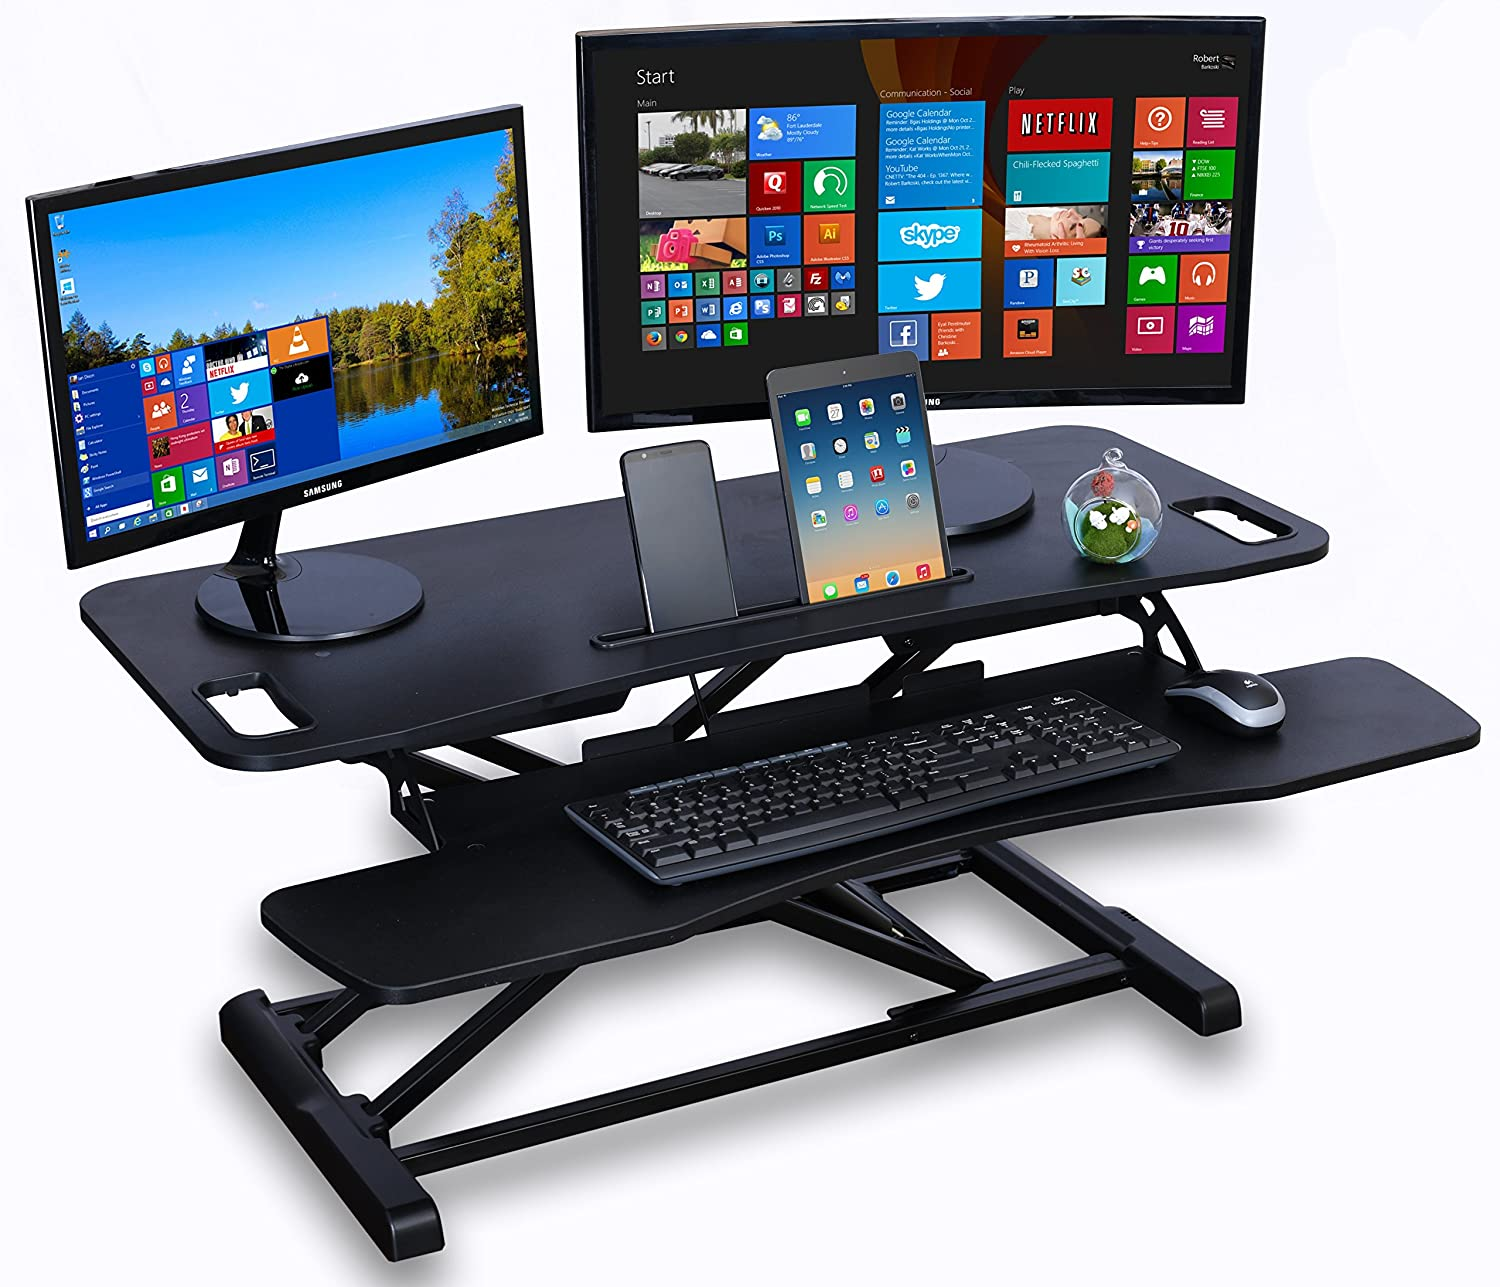 laptop adjustable desk best looking height or quotations converter monitor get keyboard guides shopping modern stand cheap standing find